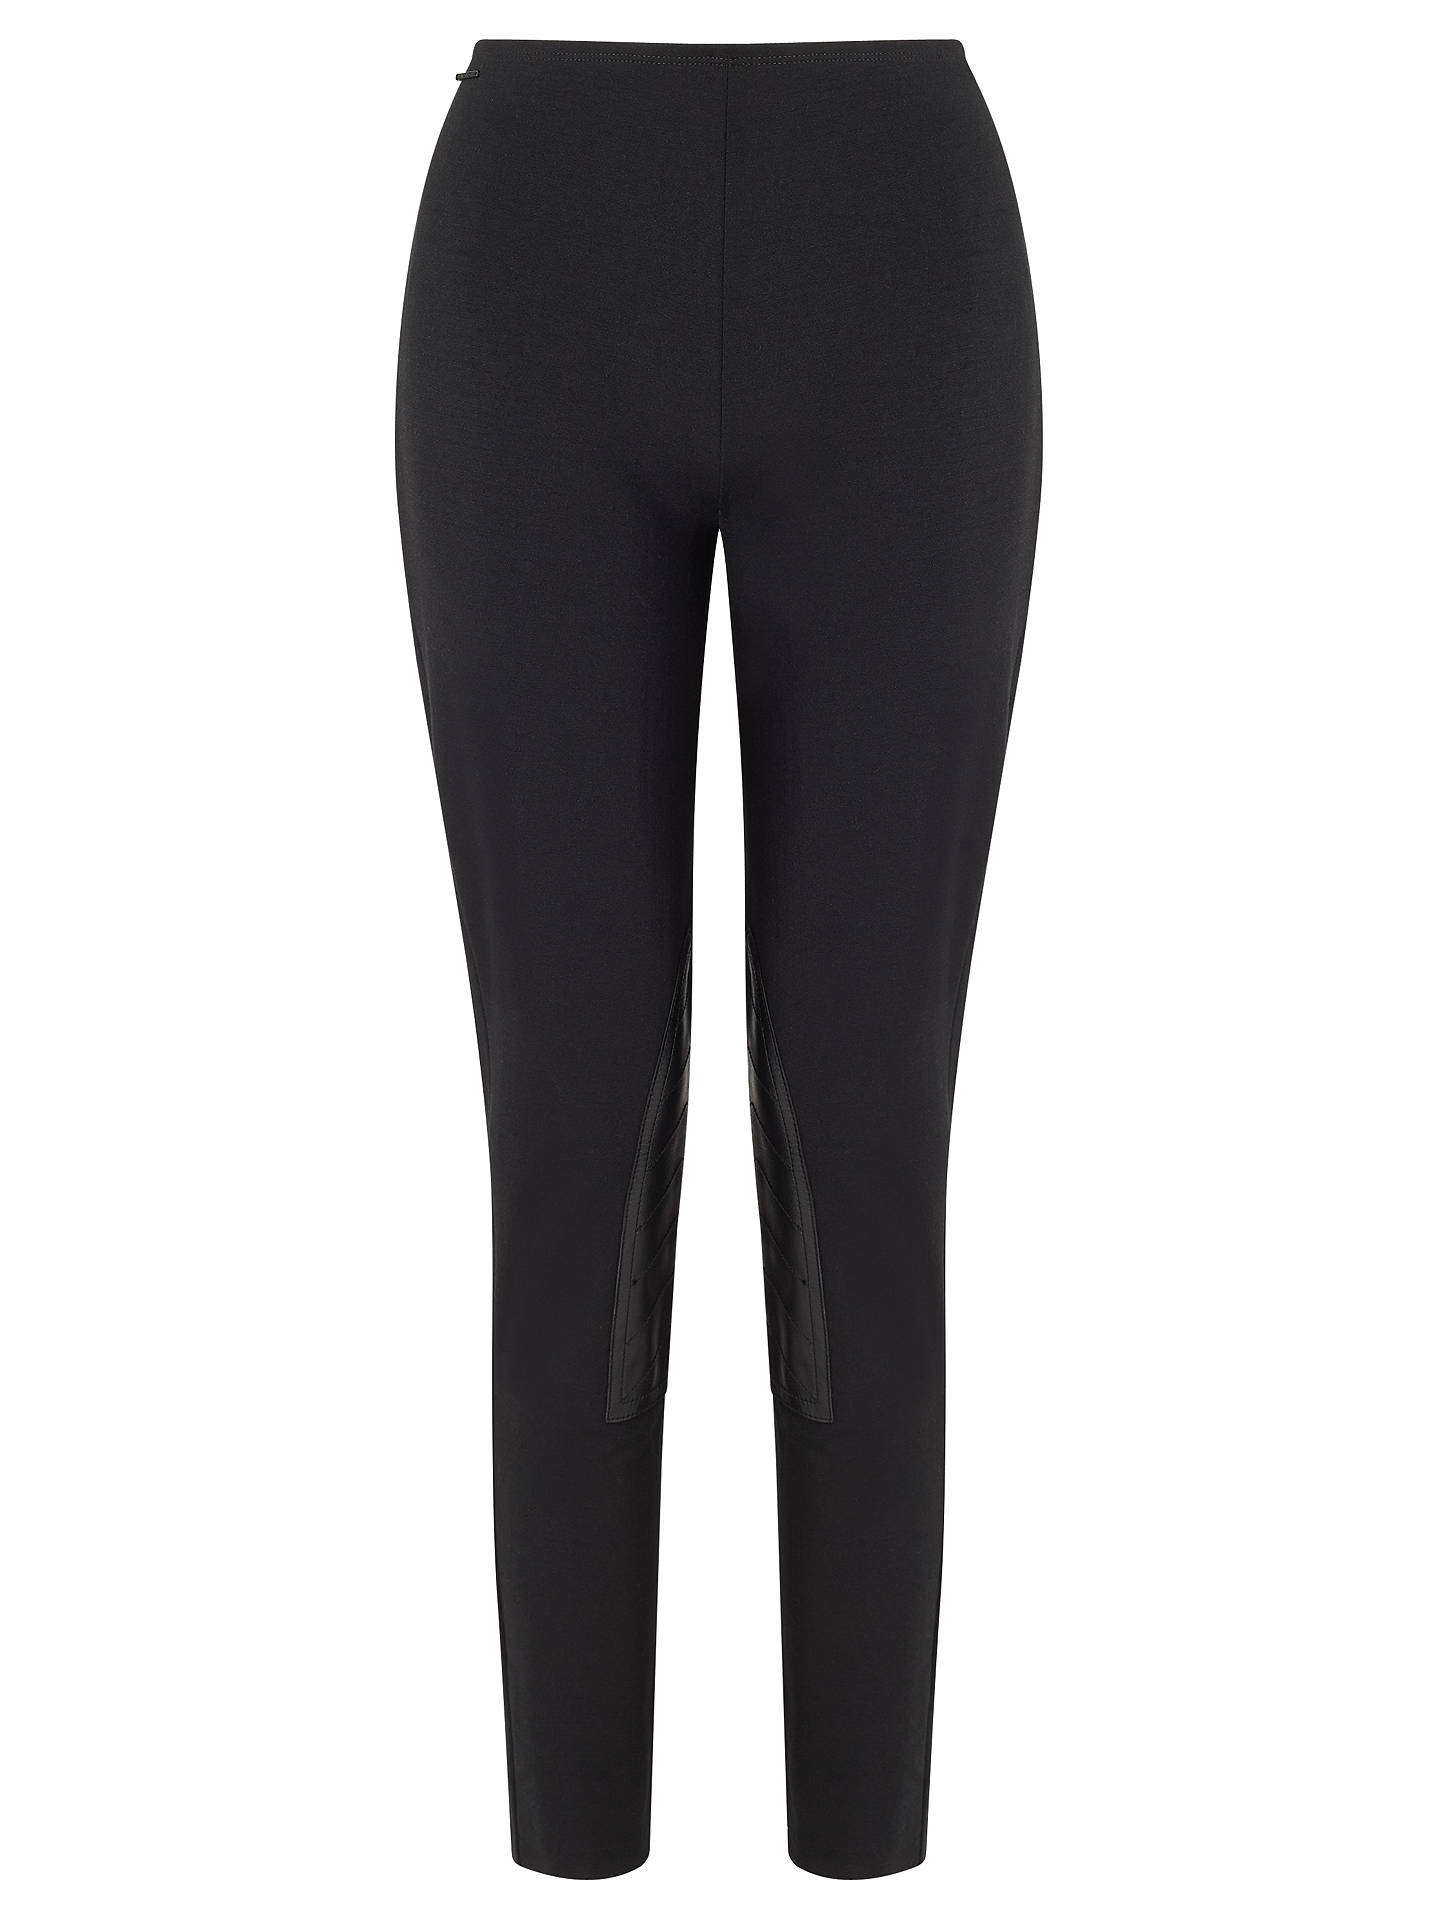 BuyPolo Ralph Lauren Jodie Skinny Trousers, Polo Black, XS Online at johnlewis.com